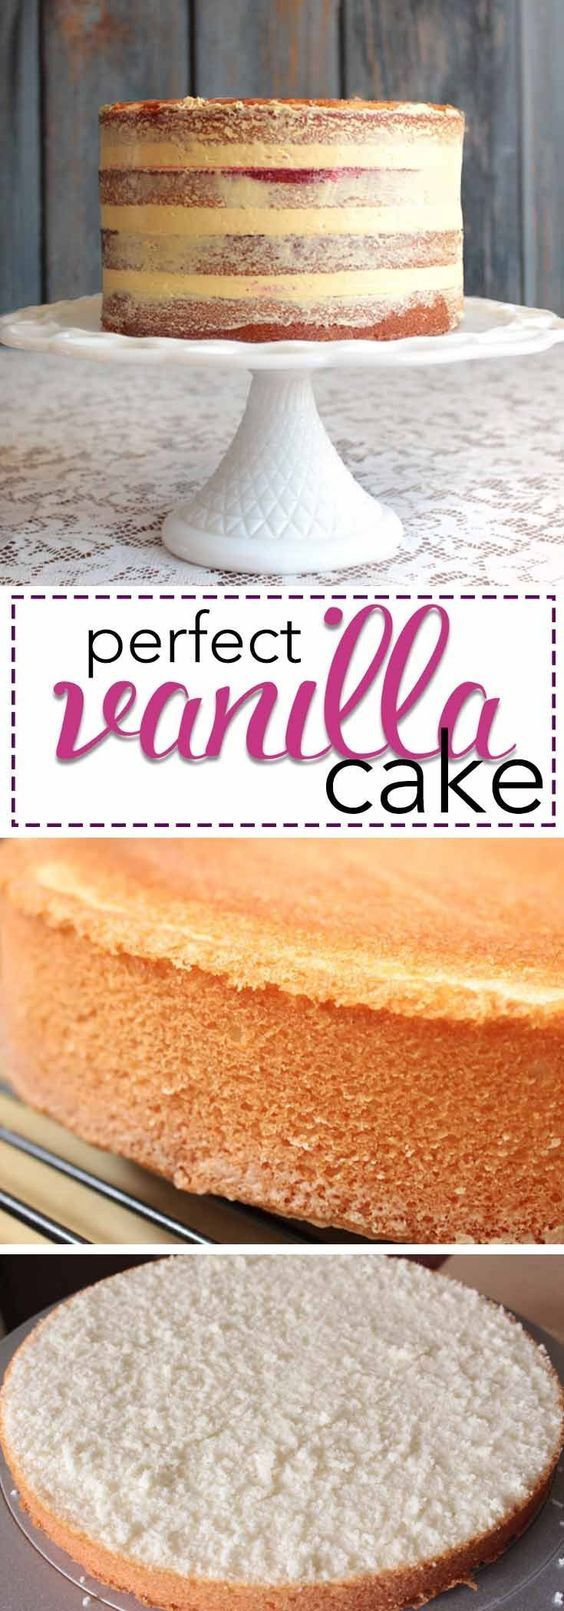 The Perfect Vanilla Cake Recipe. This amazing vanilla cake bakes perfectly every time! Try the recipe that has won over thousands of bakers around the globe! via /karascakes/